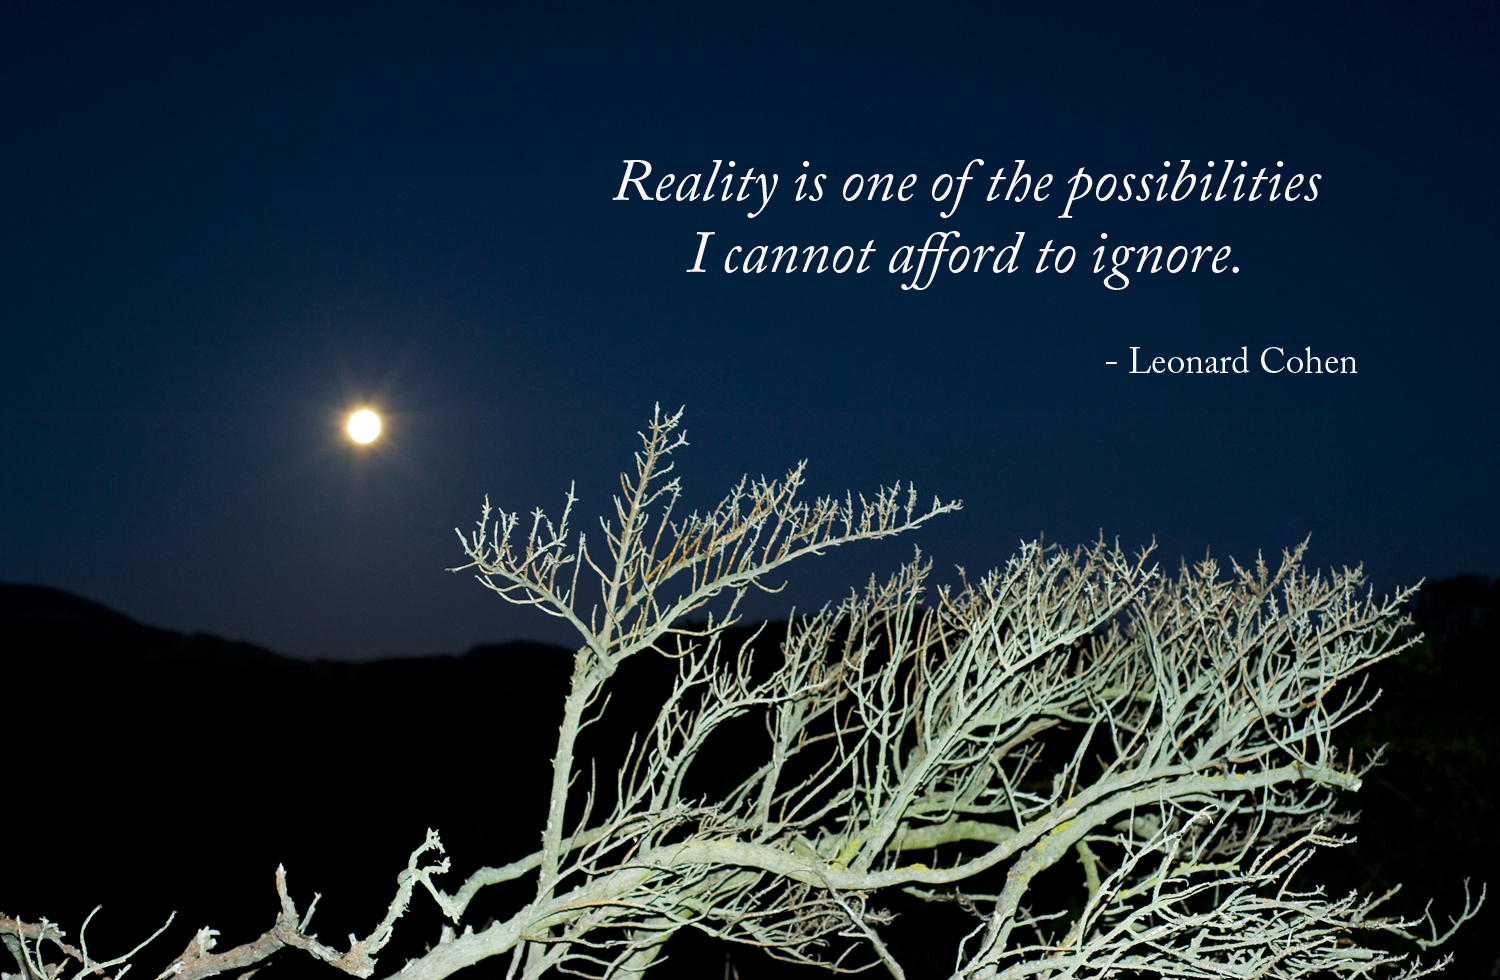 Reality is one of the possibilities